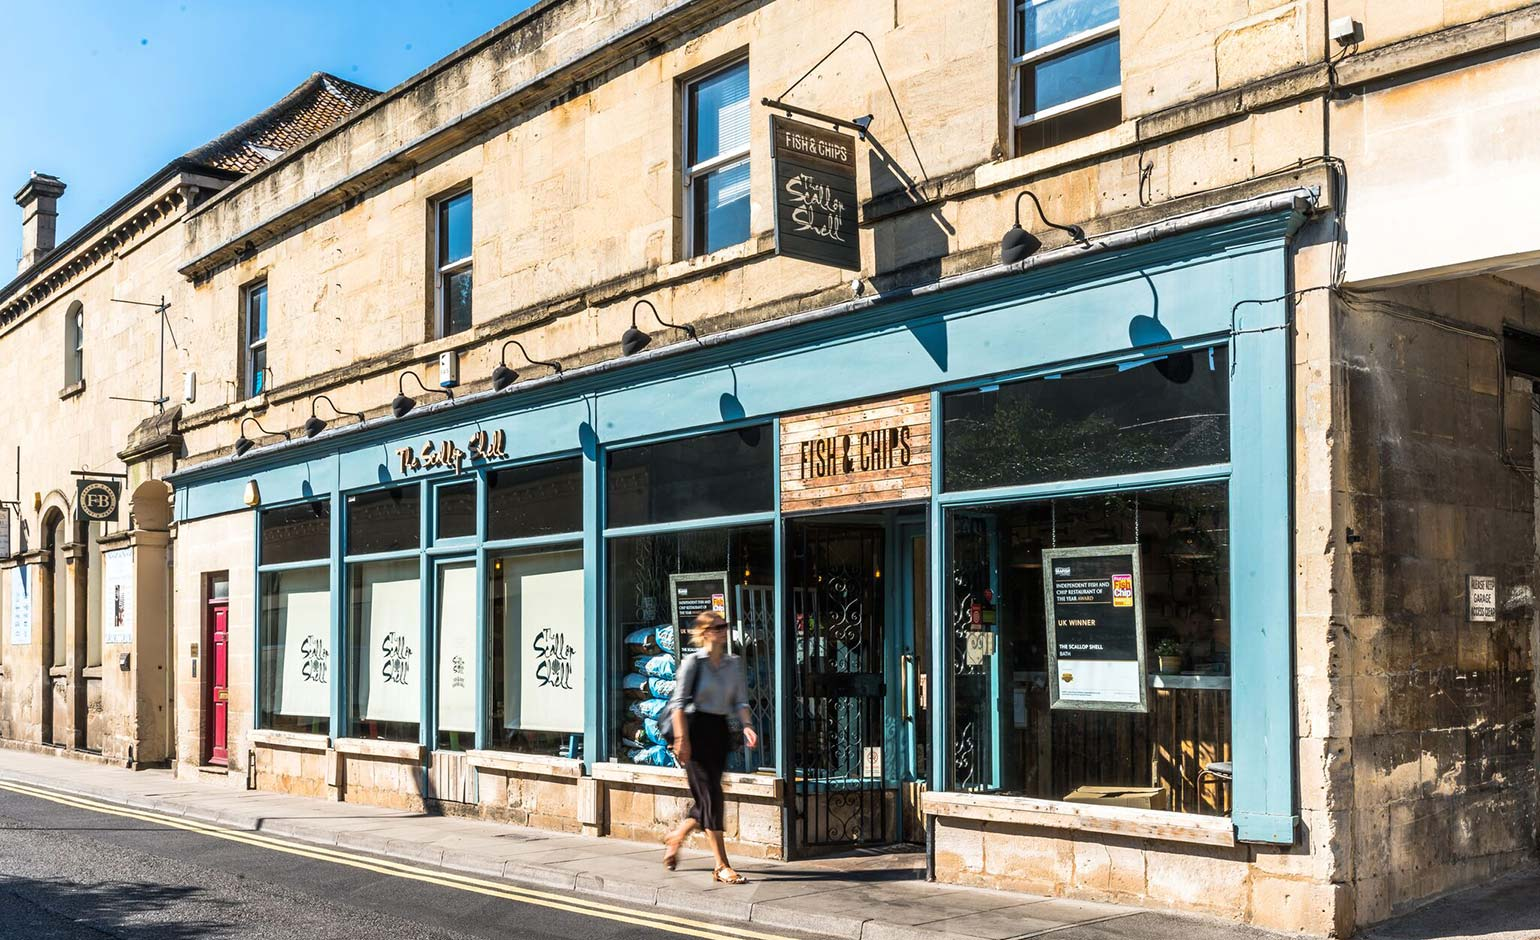 The Scallop Shell in Bath named one of the UK's best fish & chip restaurants